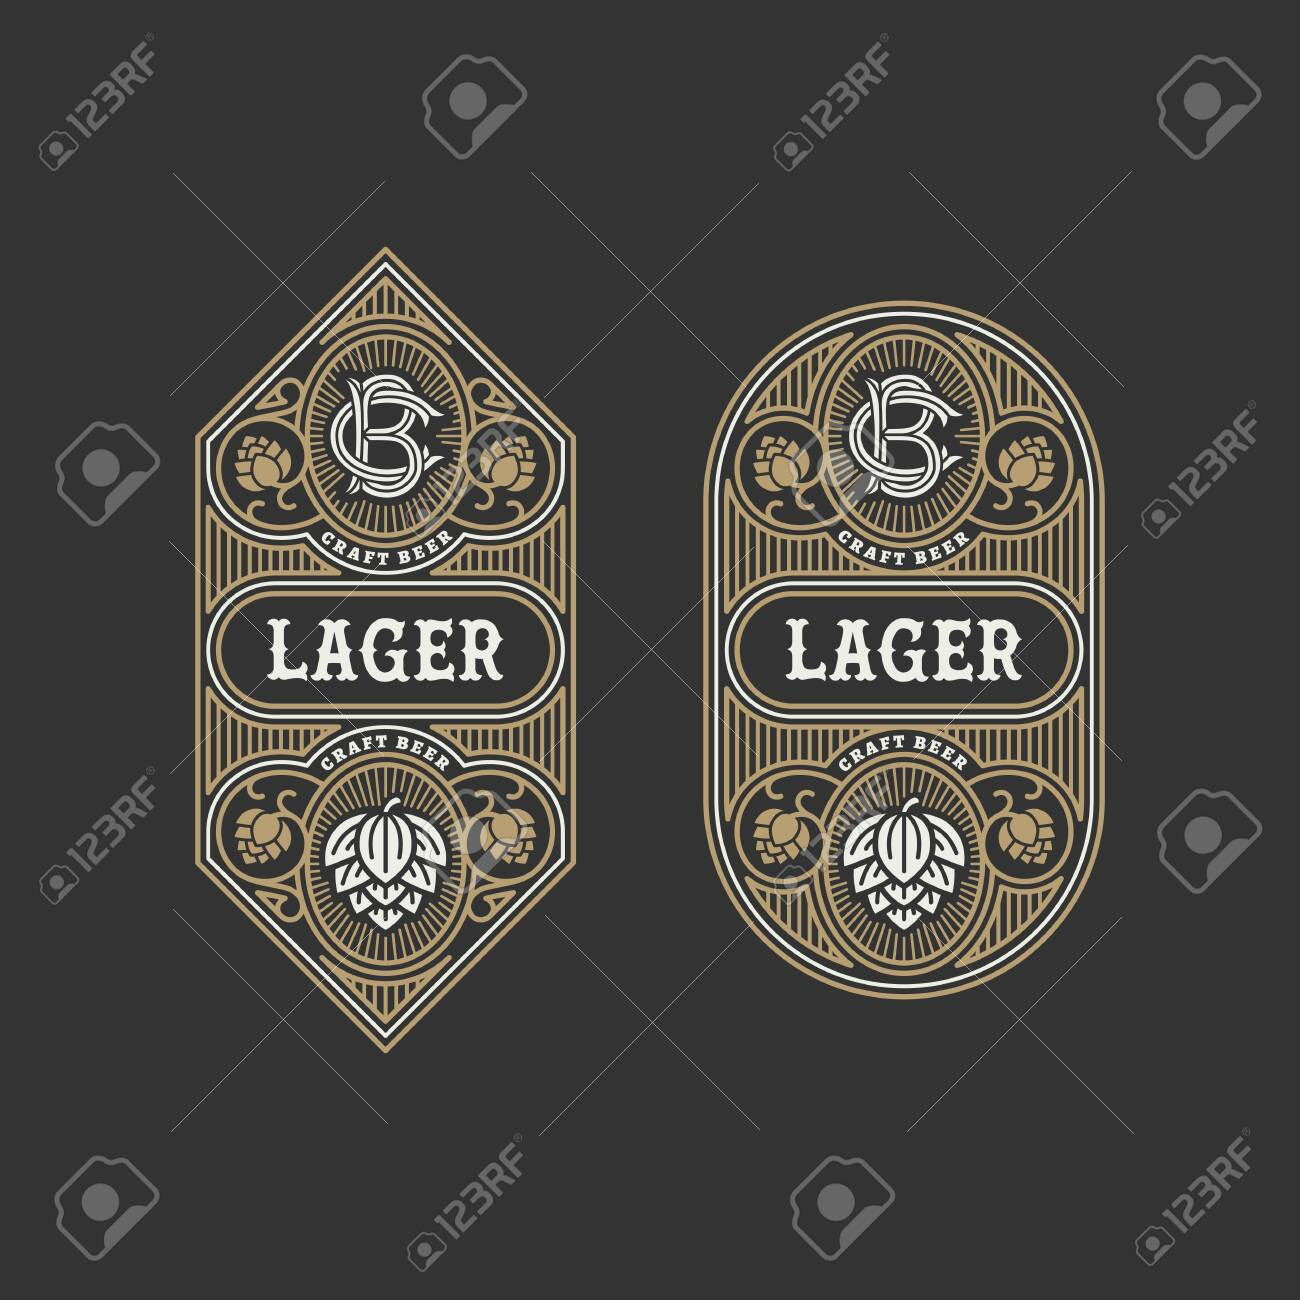 Two flourishes beer label design templates with hops. Vector illustration. - 136626317